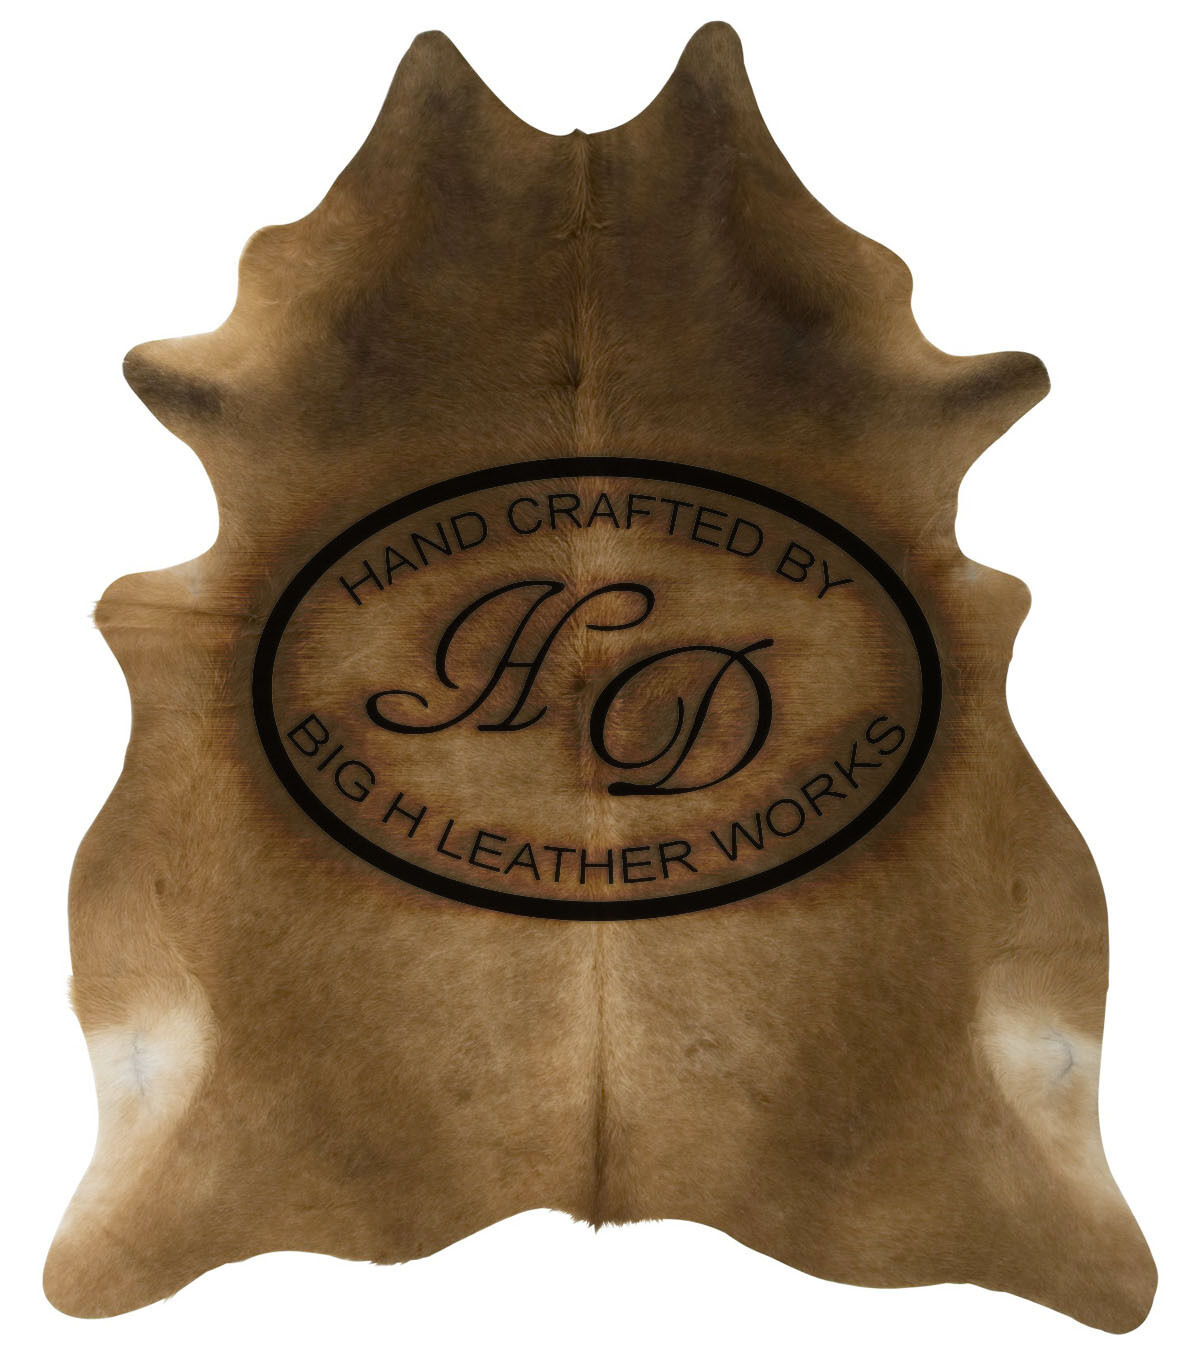 CUSTOM LEATHER WORKS